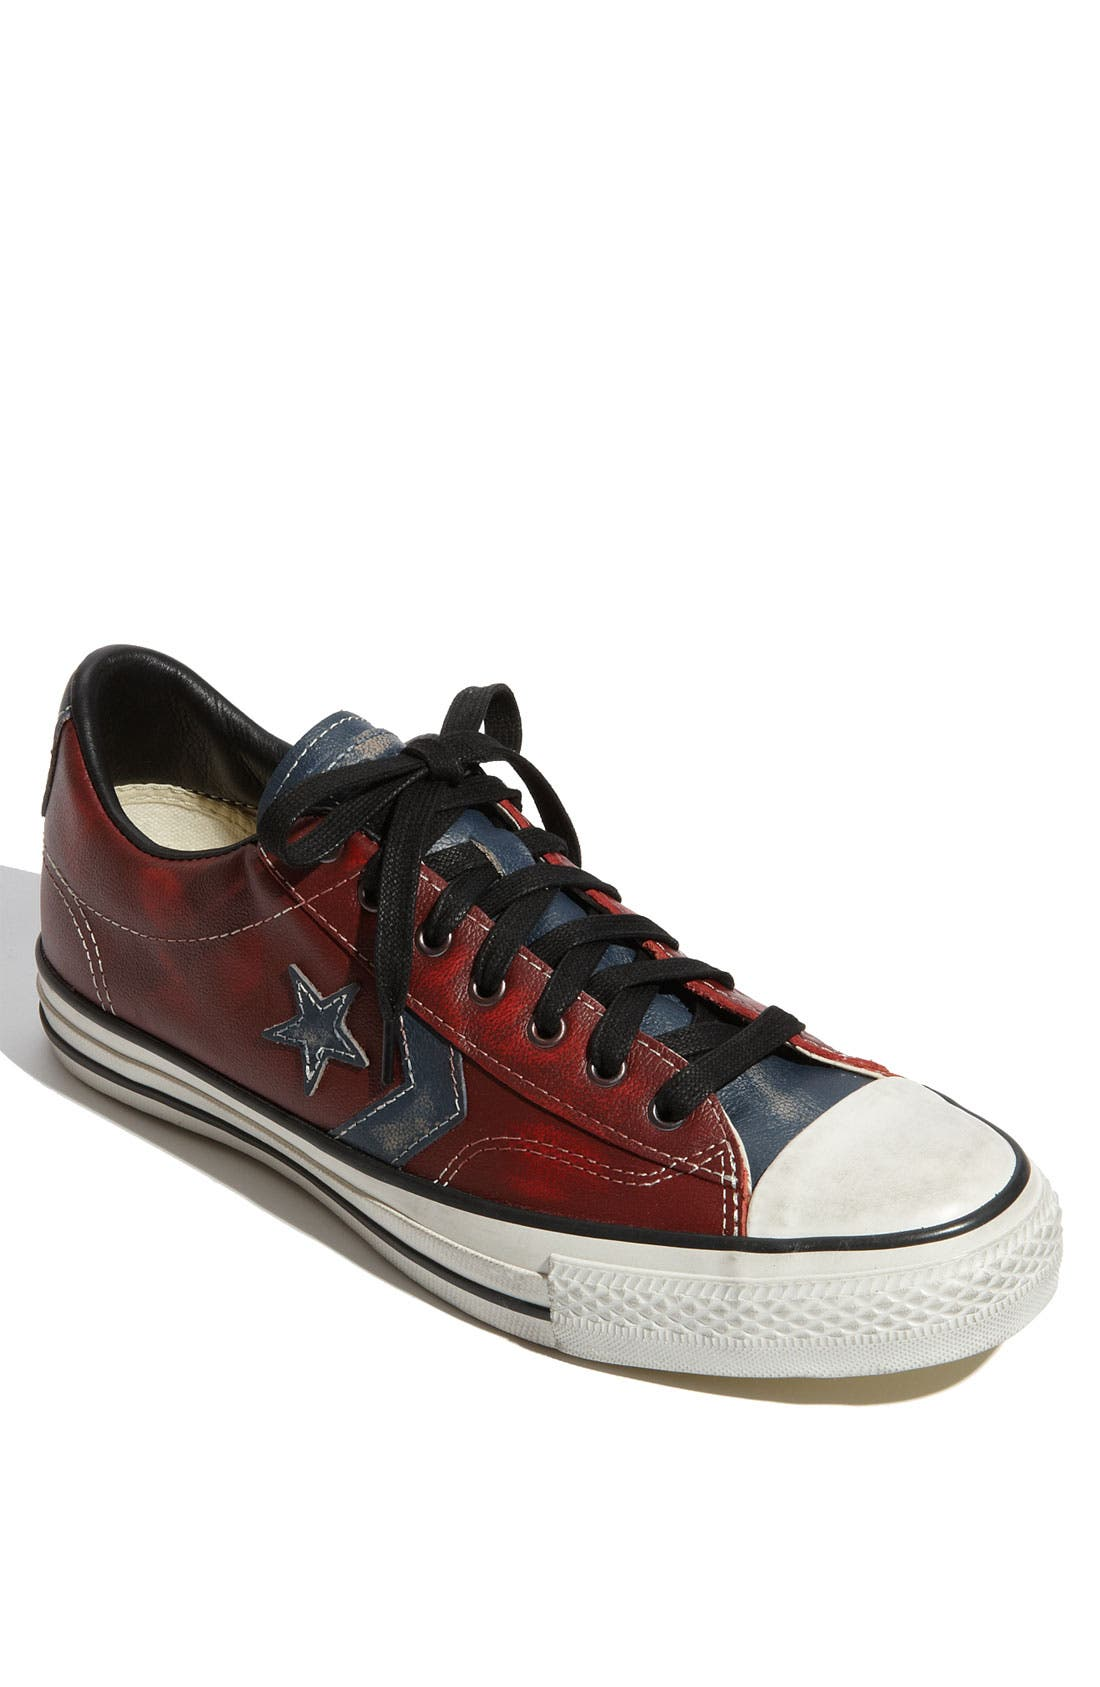 'Star Player' Leather Sneaker,                             Main thumbnail 1, color,                             Red / Blue